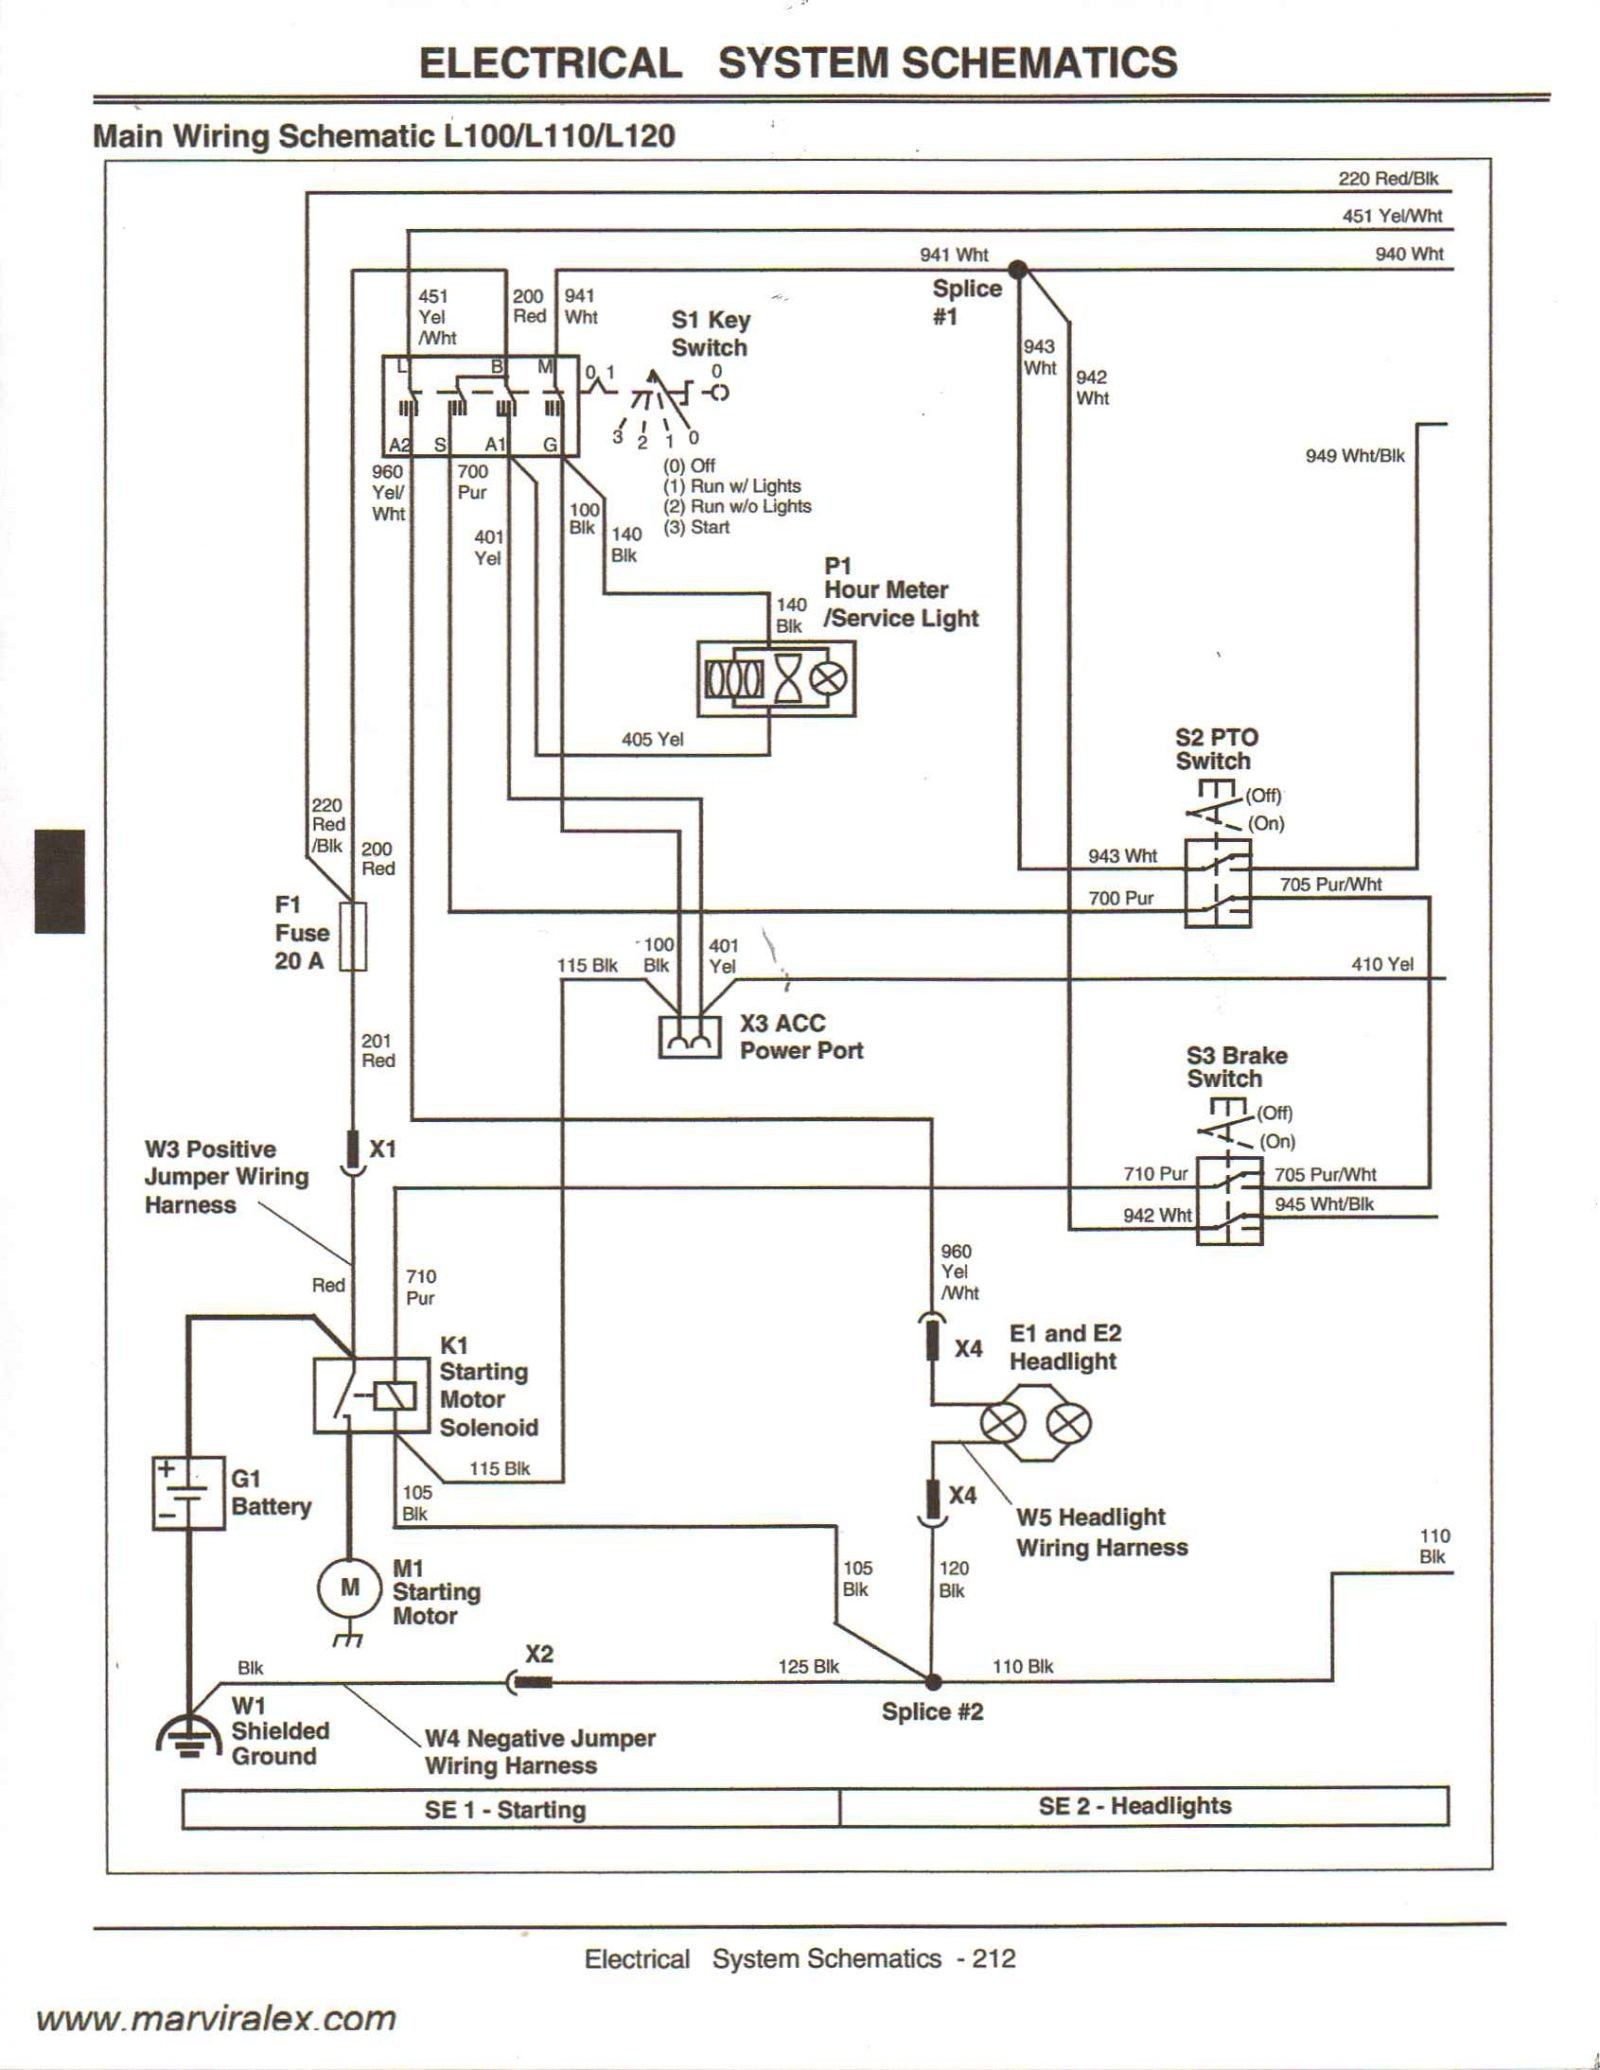 "Wiring Diagram For John Deere 110 Lawn Tractor | Wiring Diagram on john deere 3010 wiring-diagram, john deere 345 fuel pump replacement, john deere 165 wiring-diagram, john deere 112 parts diagram, john deere model b engine diagram, john deere 212 diagram, john deere 110 riding mower, john deere 112 wiring-diagram, john deere 111 wiring-diagram, john deere 155c wiring-diagram, john deere 42"" deck parts, john deere 2040 wiring-diagram, john deere 112 garden tractor manual, john deere 5103 wiring-diagram, john deere 145 wiring-diagram, john deere 130 wiring-diagram, john deere ignition switch diagram, john deere riding mower diagram, john deere 317 ignition diagram, john deere 332 ignition switch,"